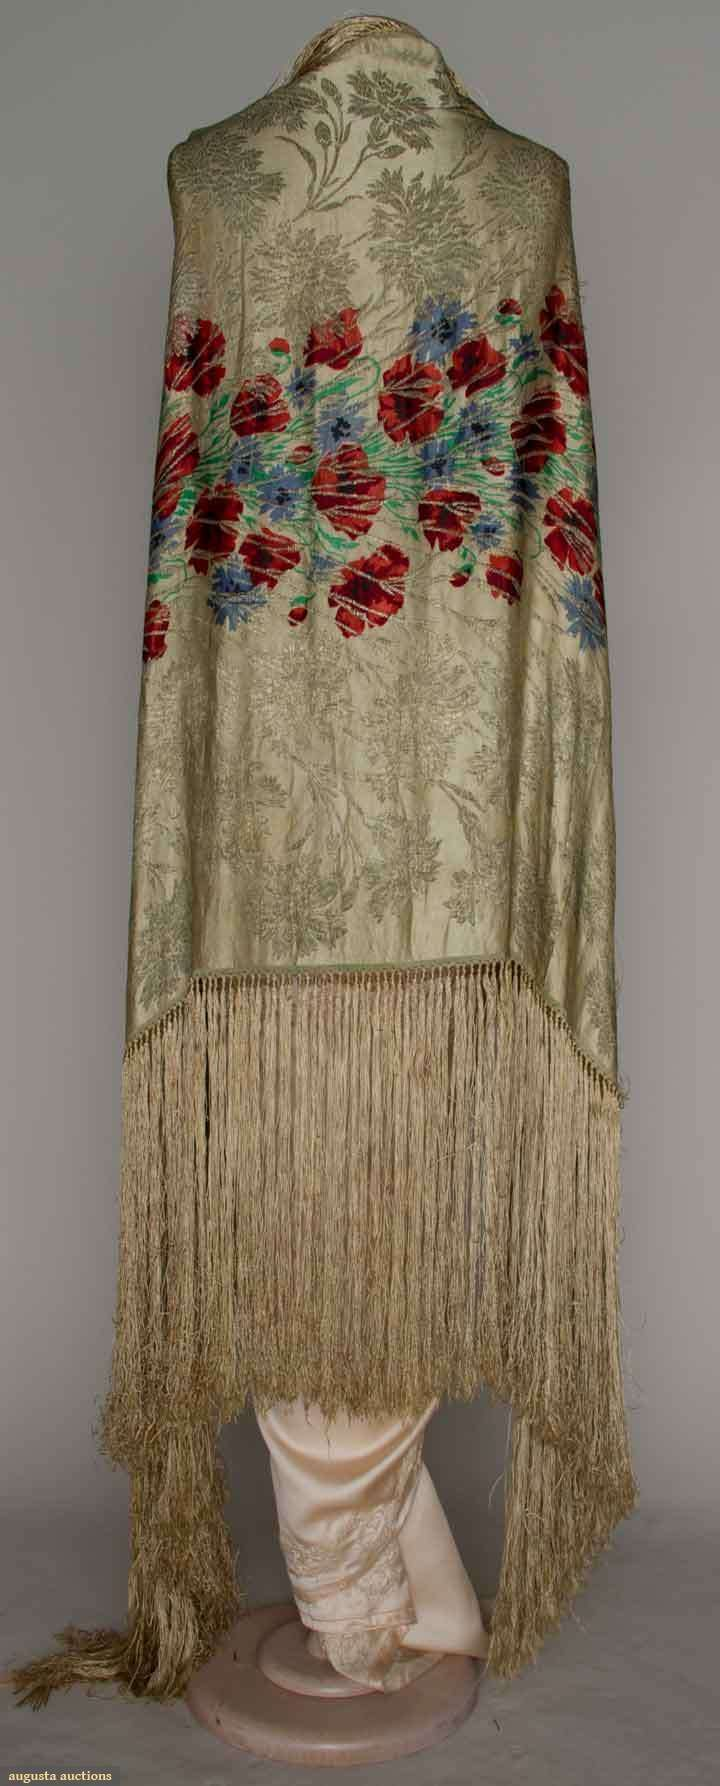 Printed Silk & Gold Lame Shawl, 1920s, Augusta Auctions, March 21, 2012 NYC, Lot 228